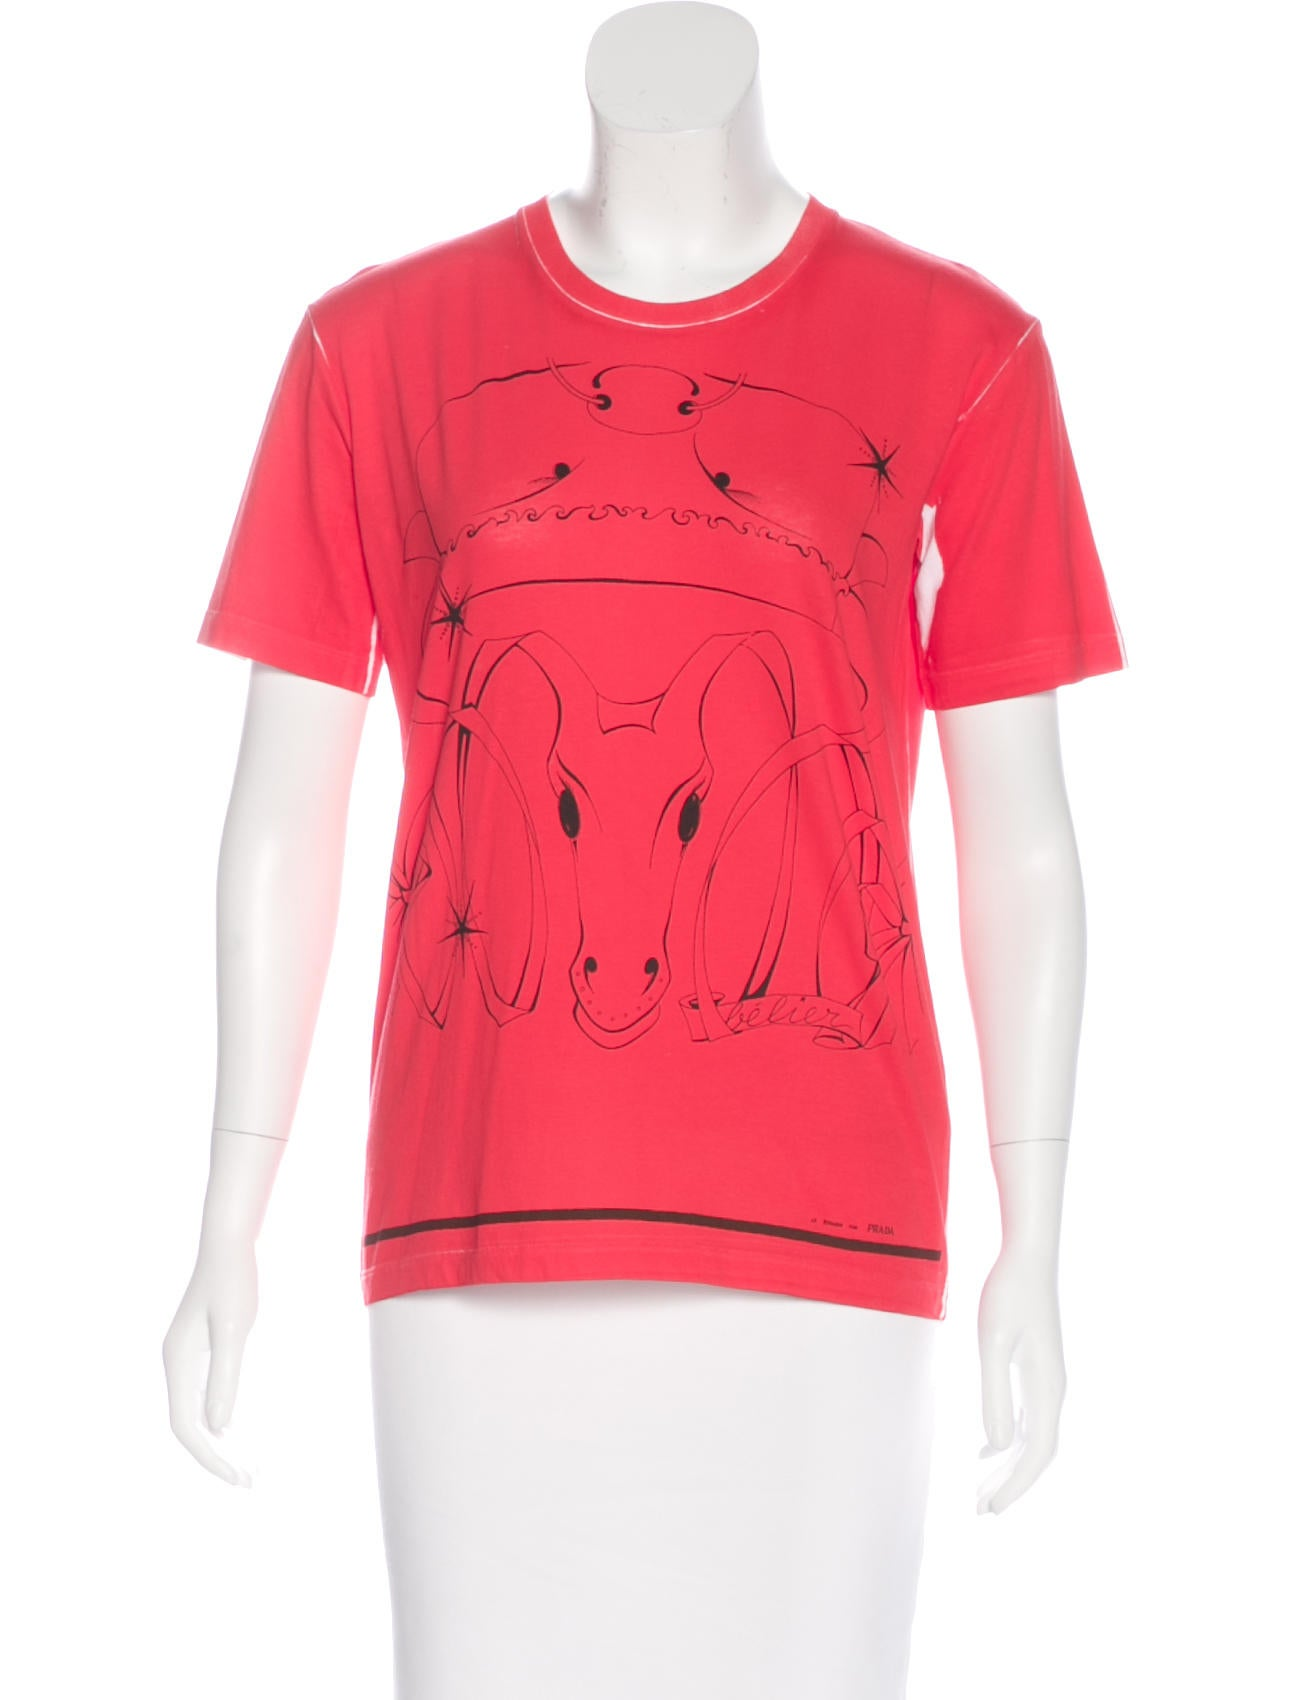 Prada printed short sleeve t shirt clothing pra146487 for Printed short sleeve shirts